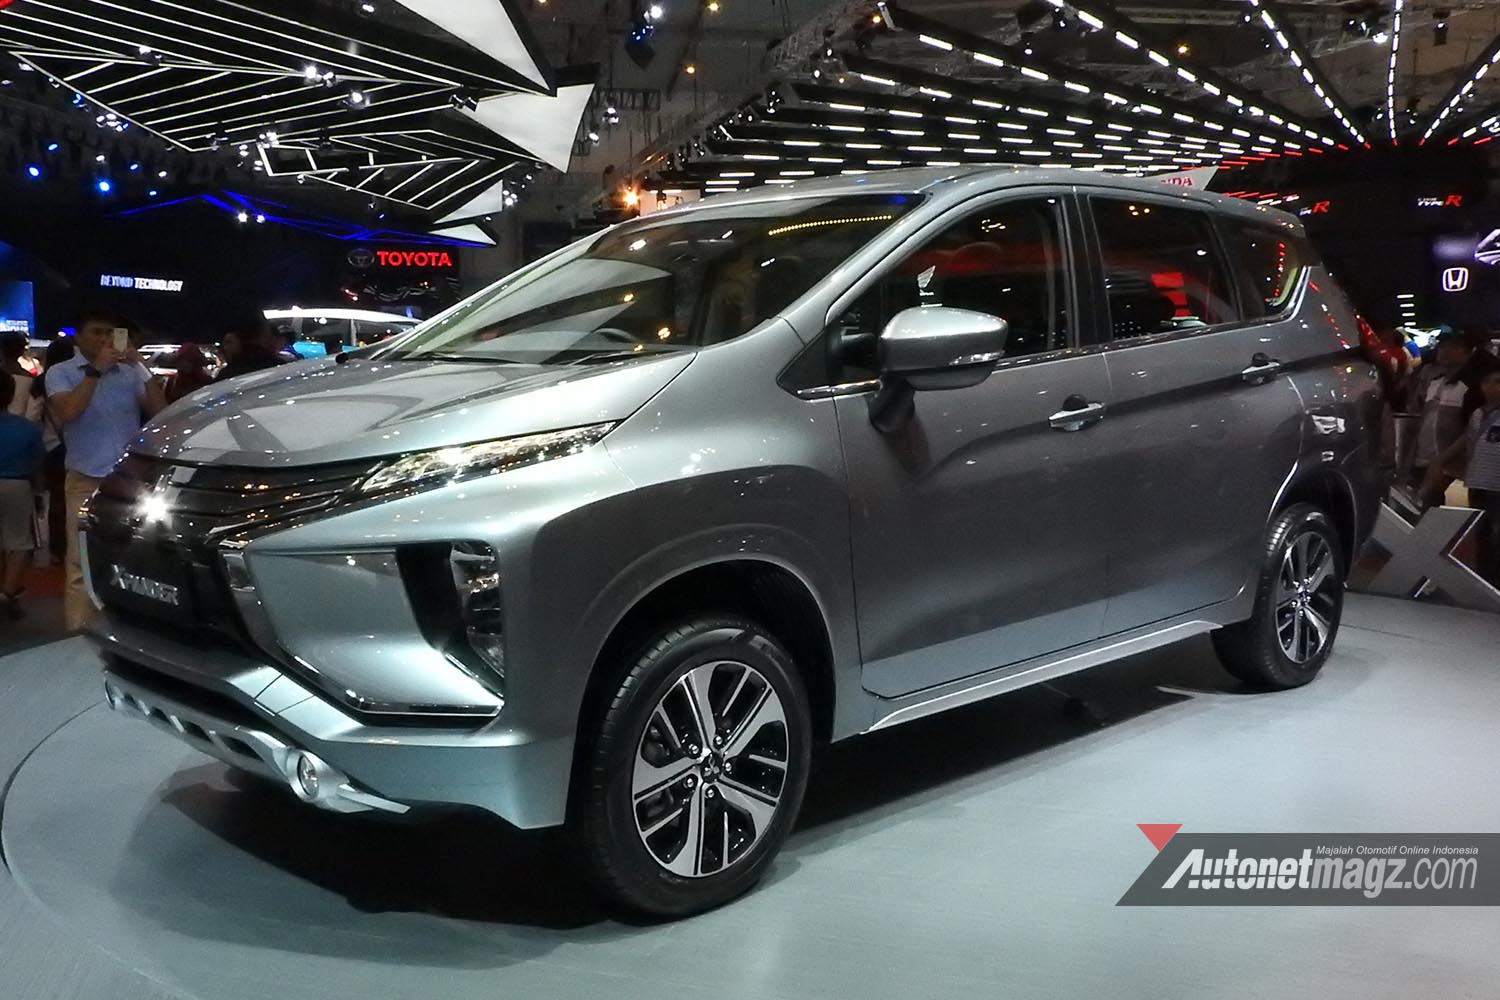 2017 Mobilio >> First Impression Review Mitsubishi Xpander 2017 Indonesia - AutonetMagz